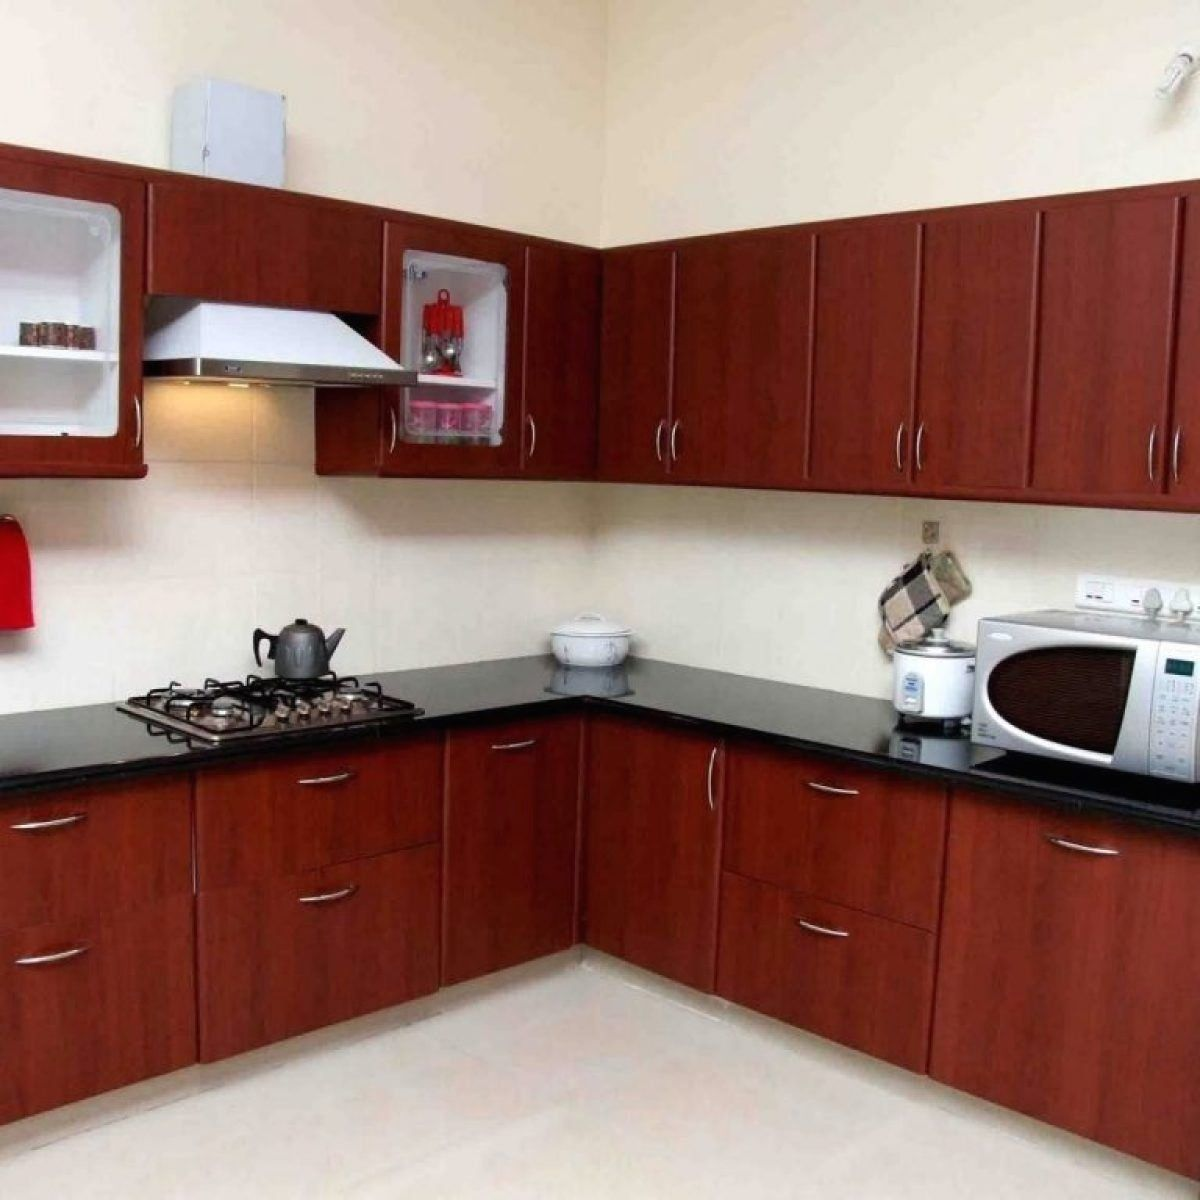 39 The Biggest Myth About Modular Kitchen Design Indian L Shape Exposed 1000 Modern 2020